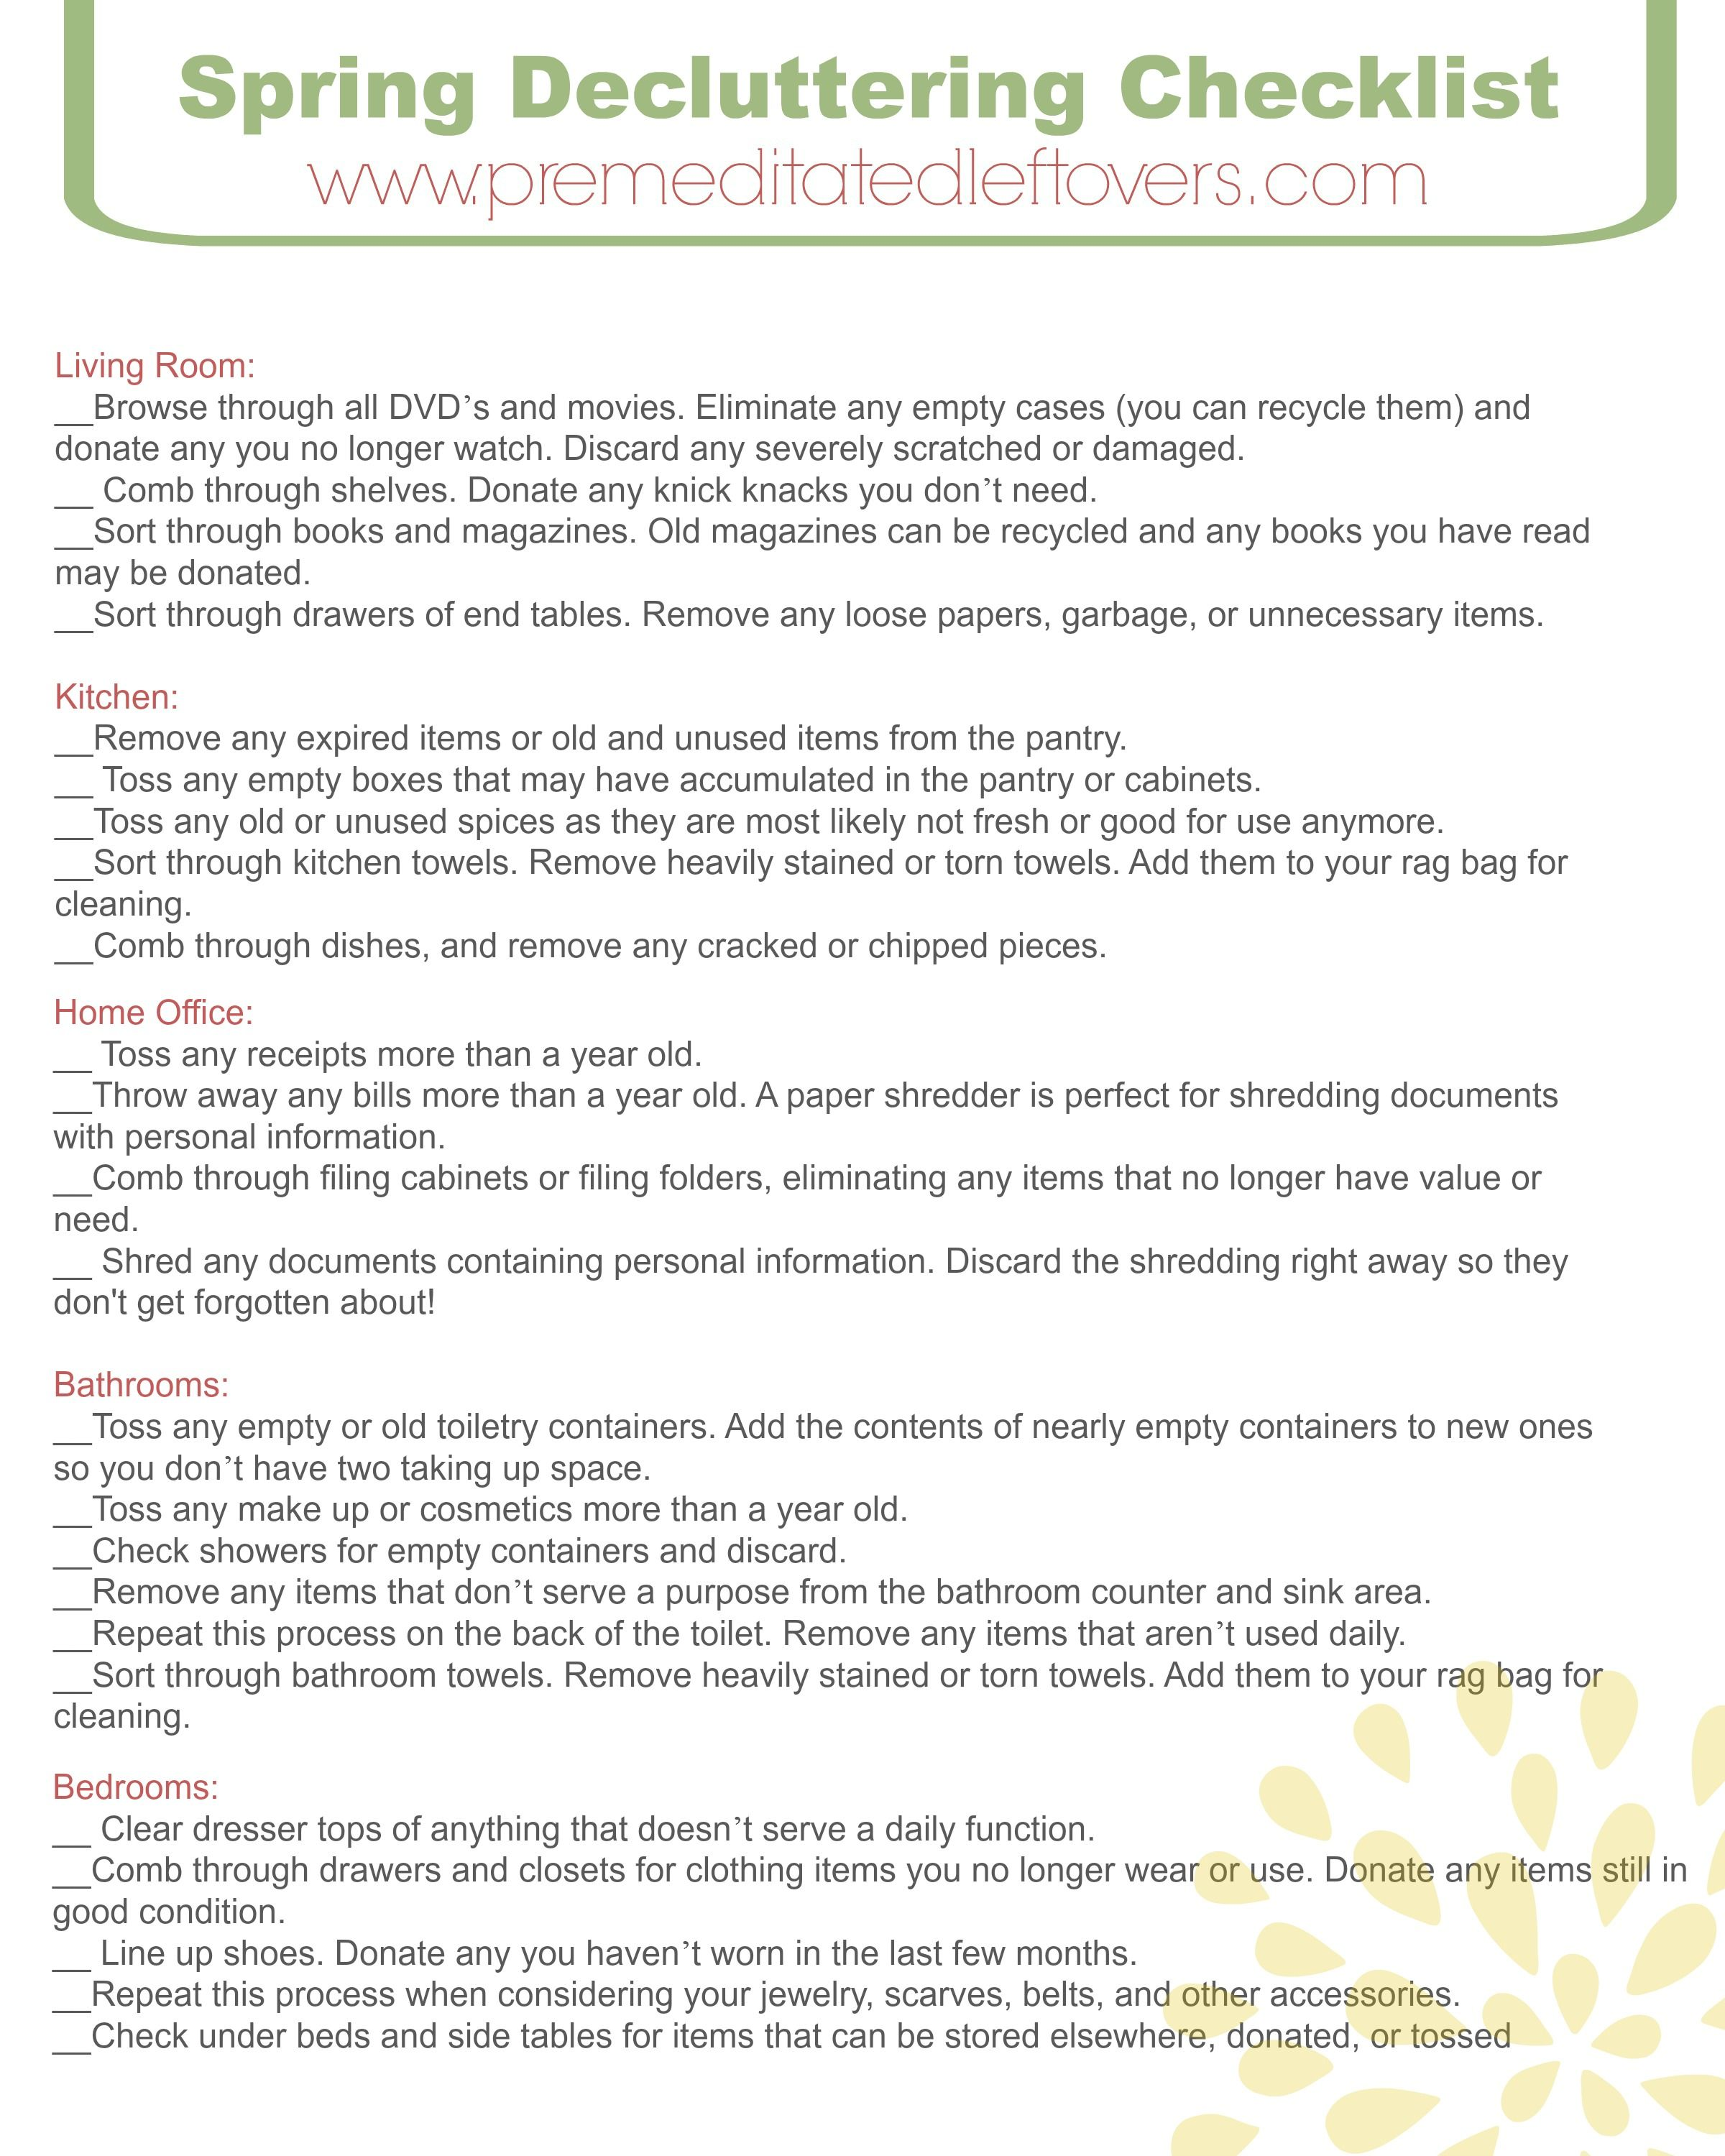 Free Printable Home Decluttering Checklist To Help You